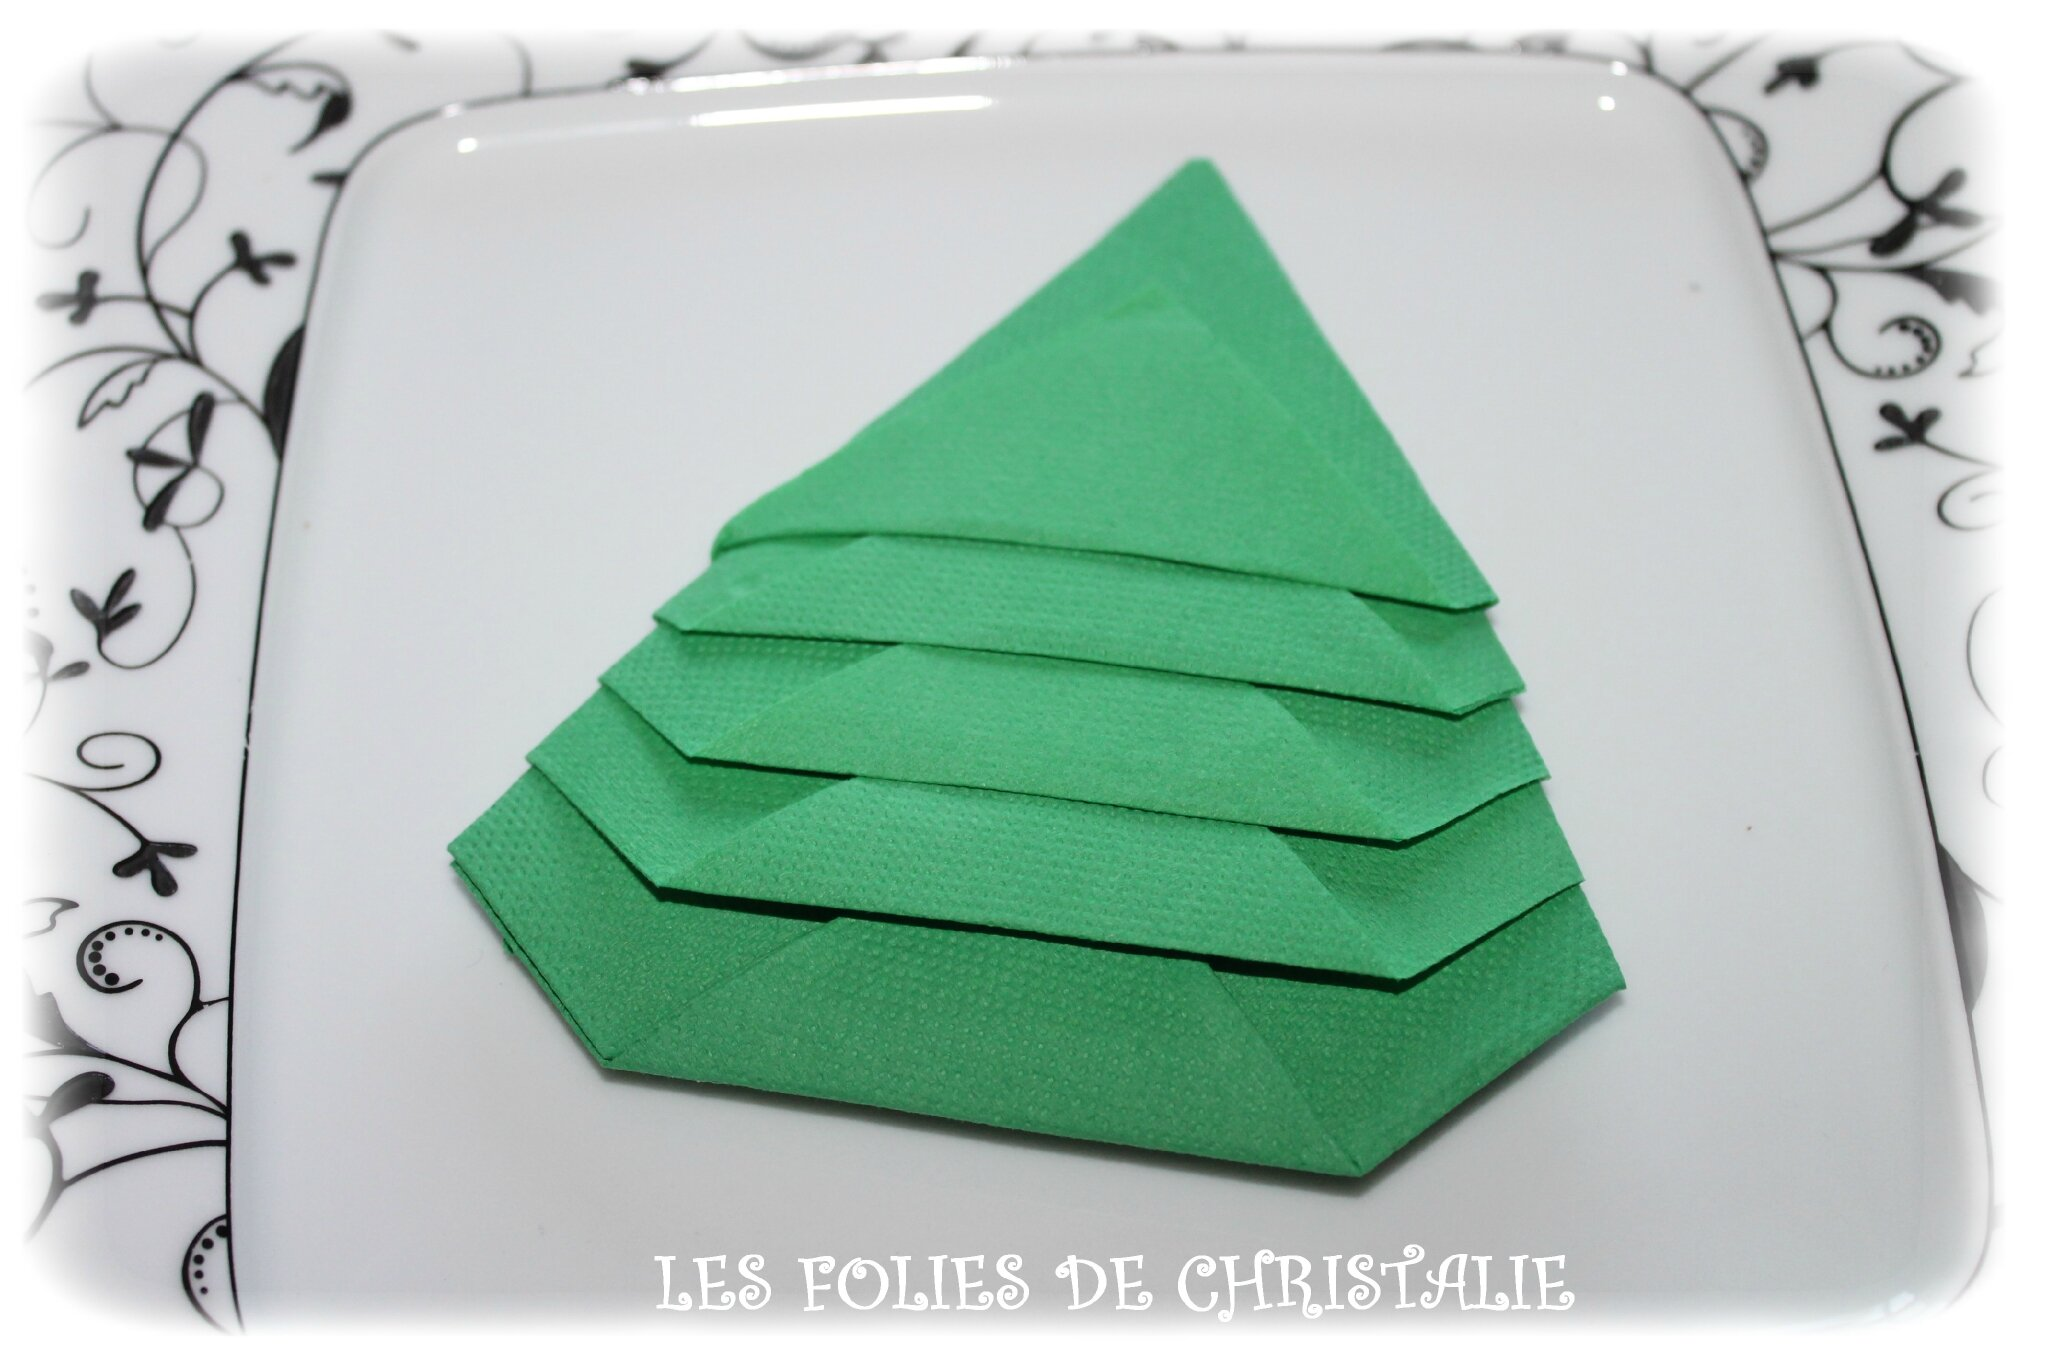 Pliage des serviettes en forme de sapin les folies de for Pliage de serviette en forme de sapin video